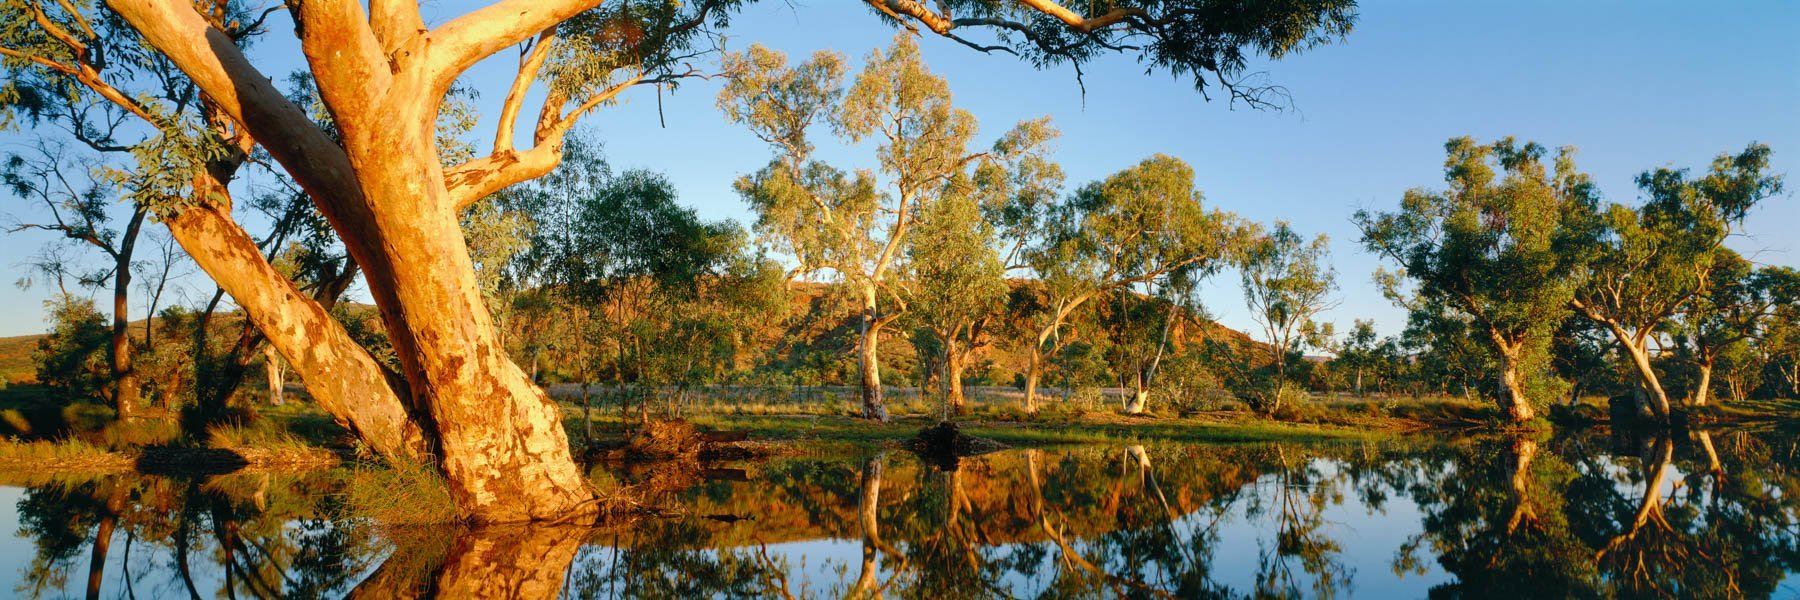 Peace and tranquillity at the waterhole, Jay Creek, NT central Australia.